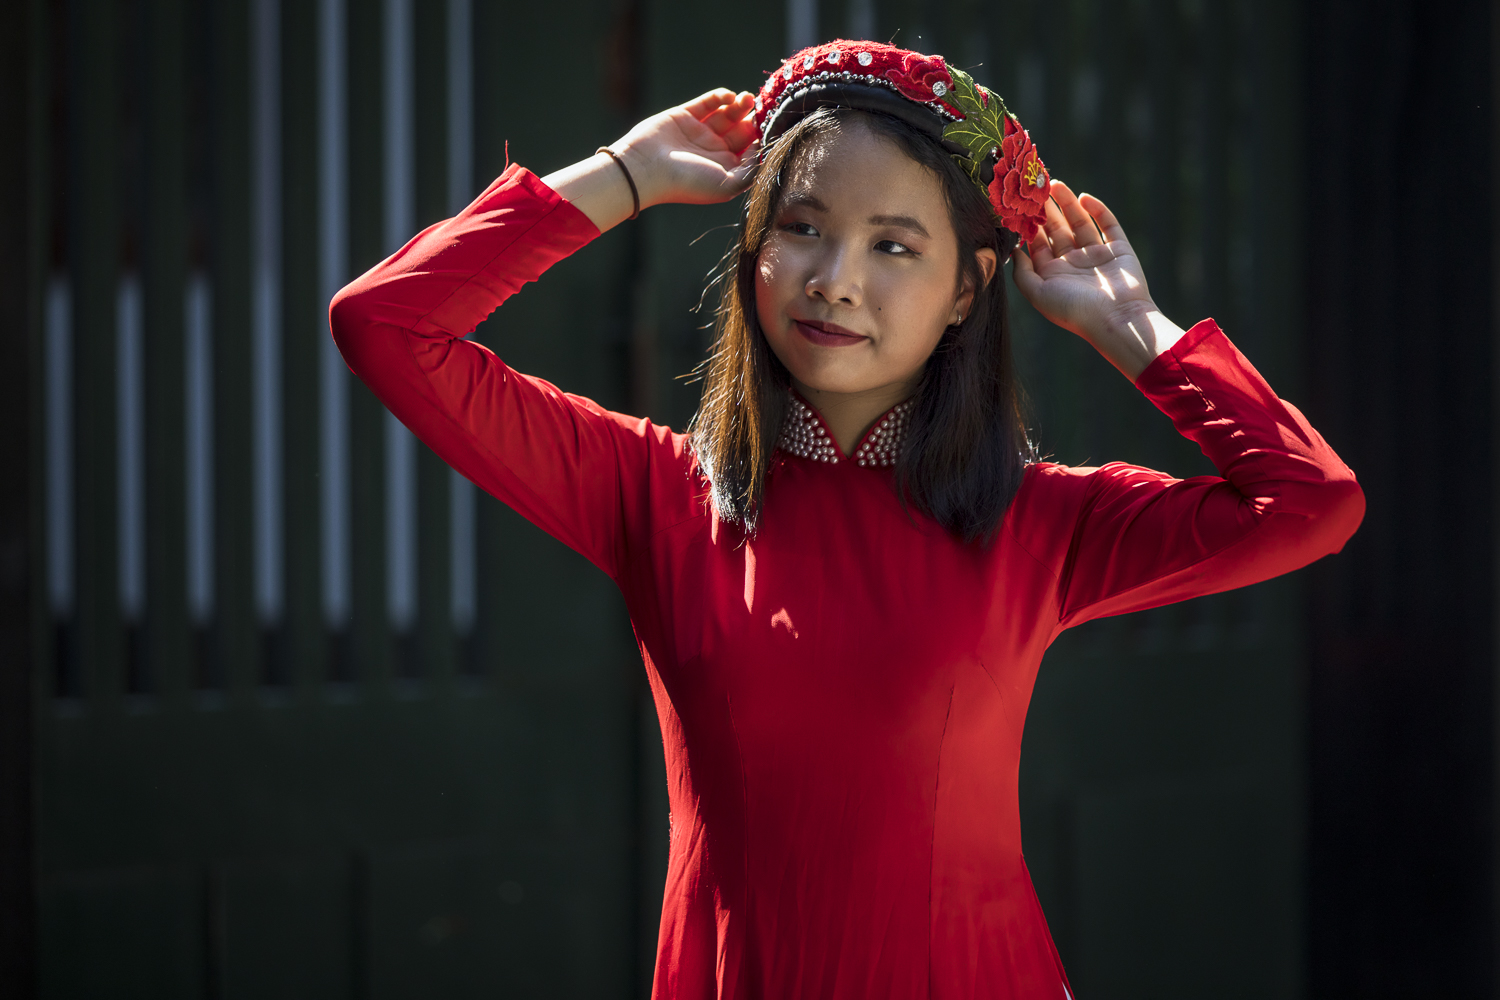 Red Ao Dai and hard light